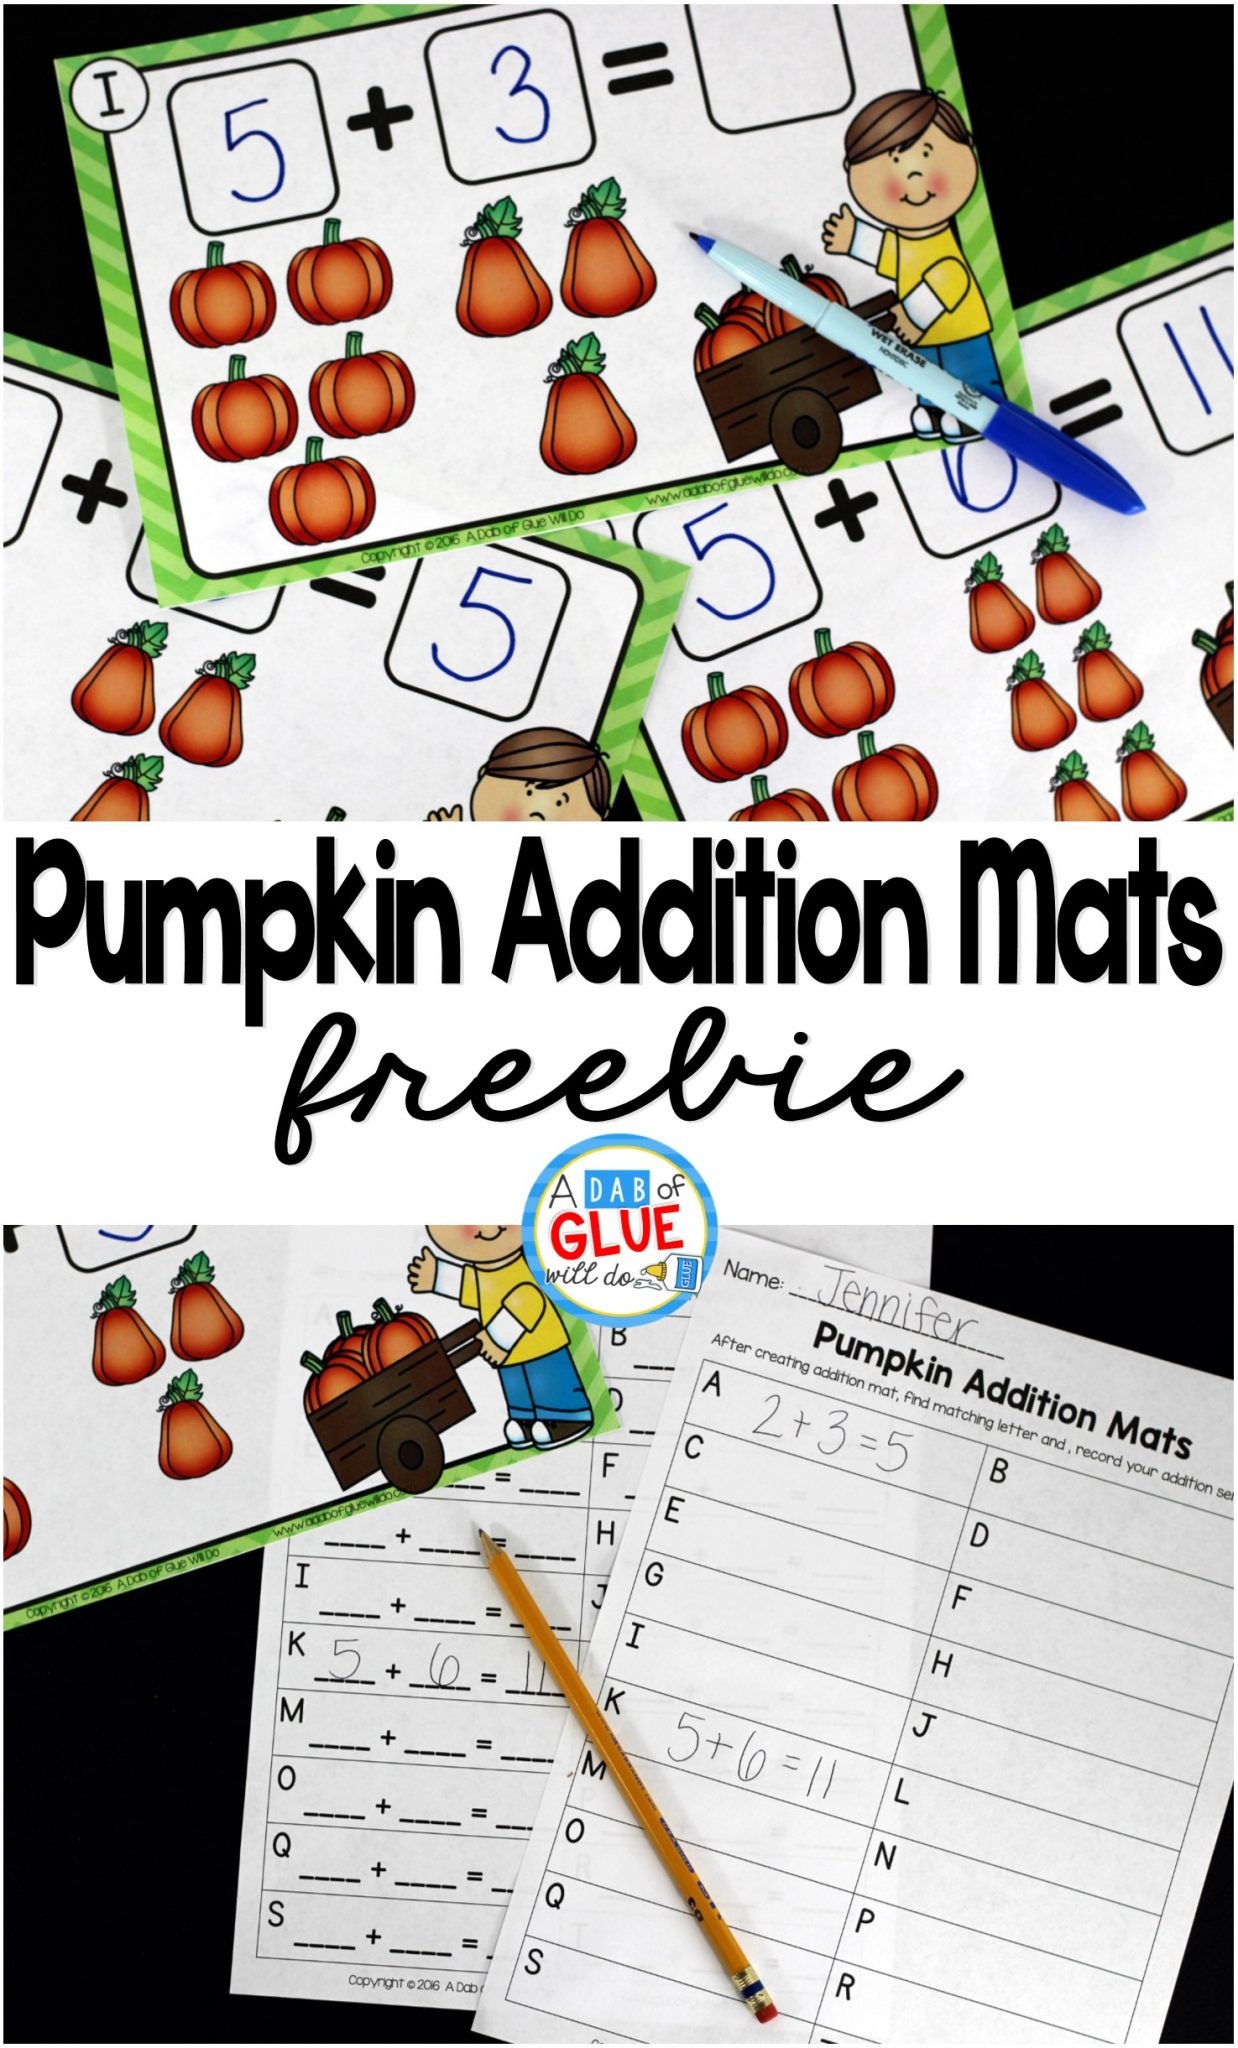 Pumpkin Addition Mats A Dab Of Glue Will Do